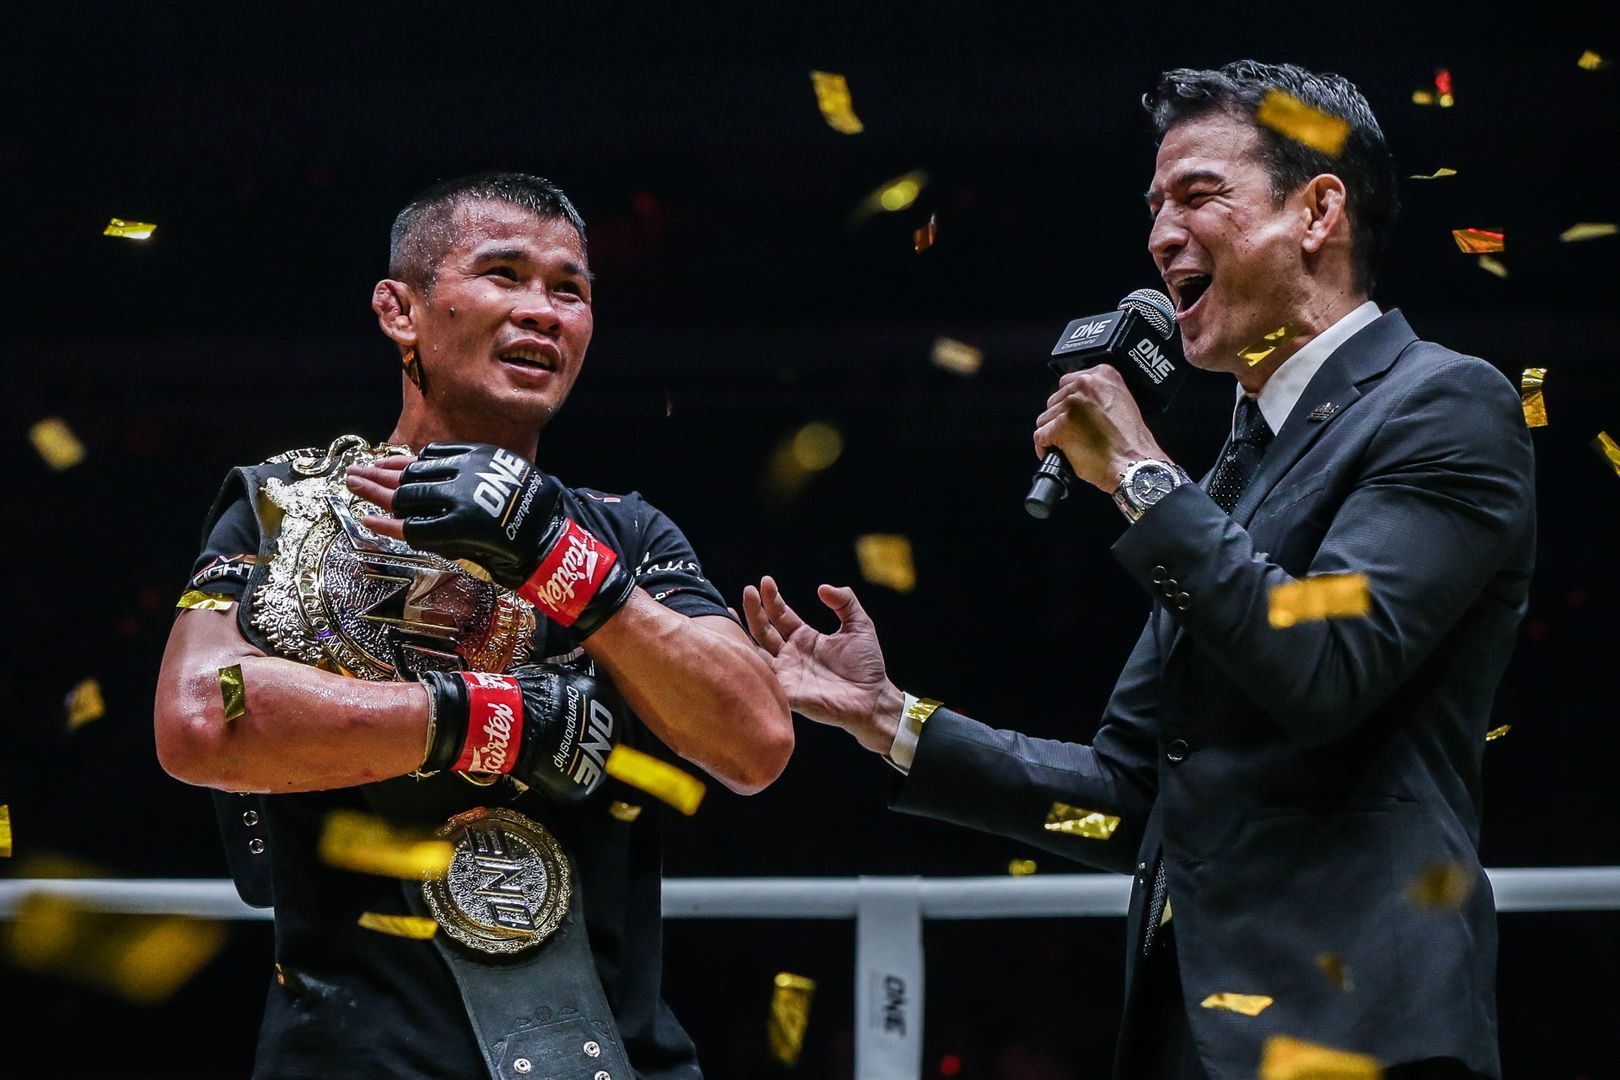 ONE Bantamweight Muay Thai World Champion Nong-O Gaiyanghadao interviewed by Mitch Chilson